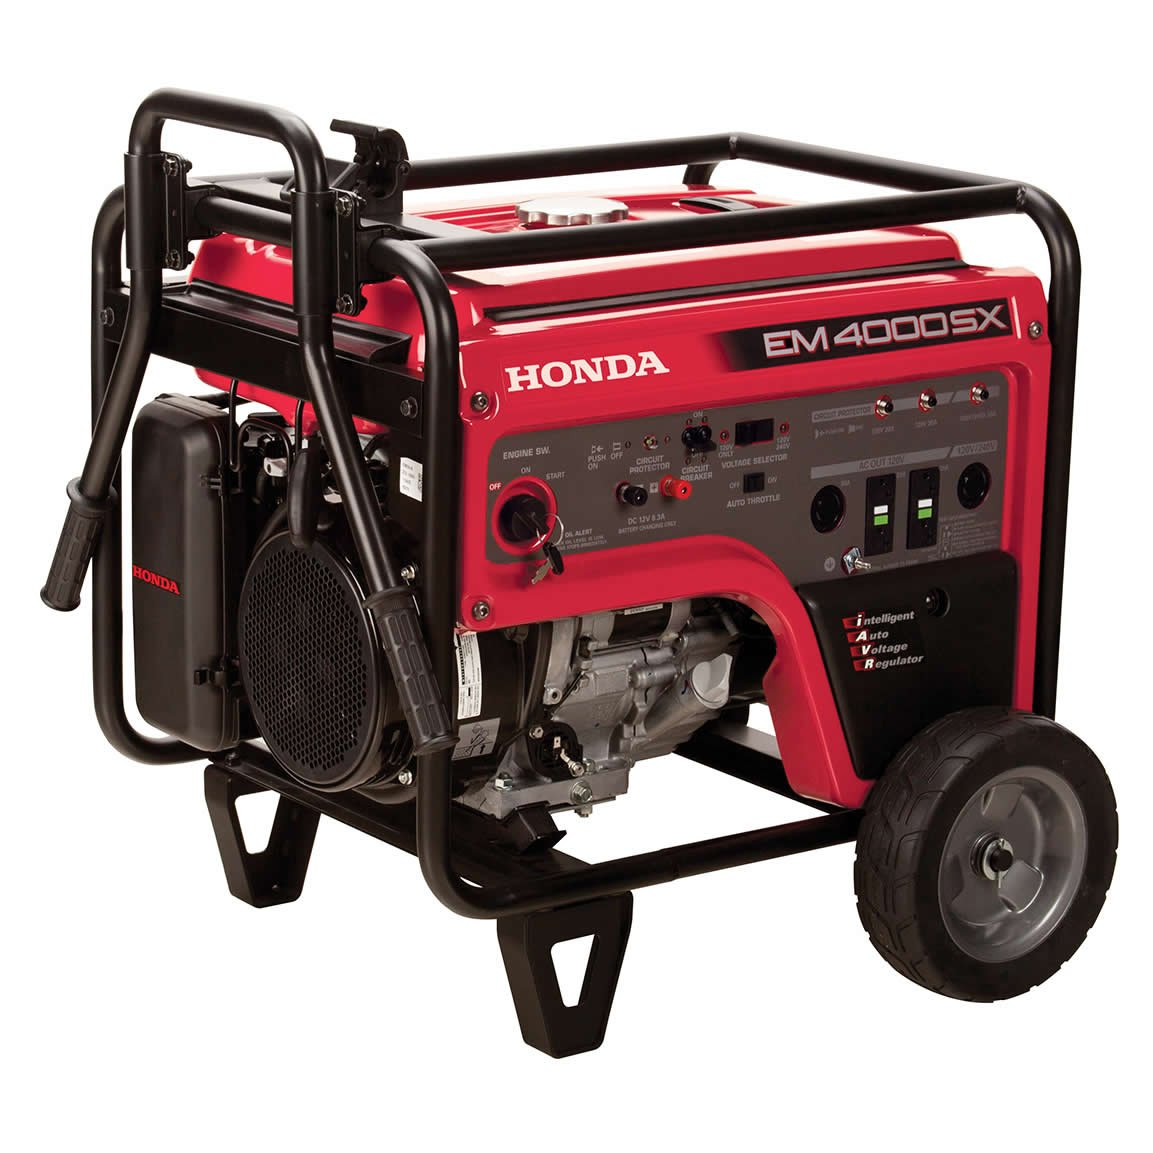 Get Quotations · Honda Power Equipment EM4000SXAT 4,000W Portable Generator  with iAVR Technology CARB, Steel